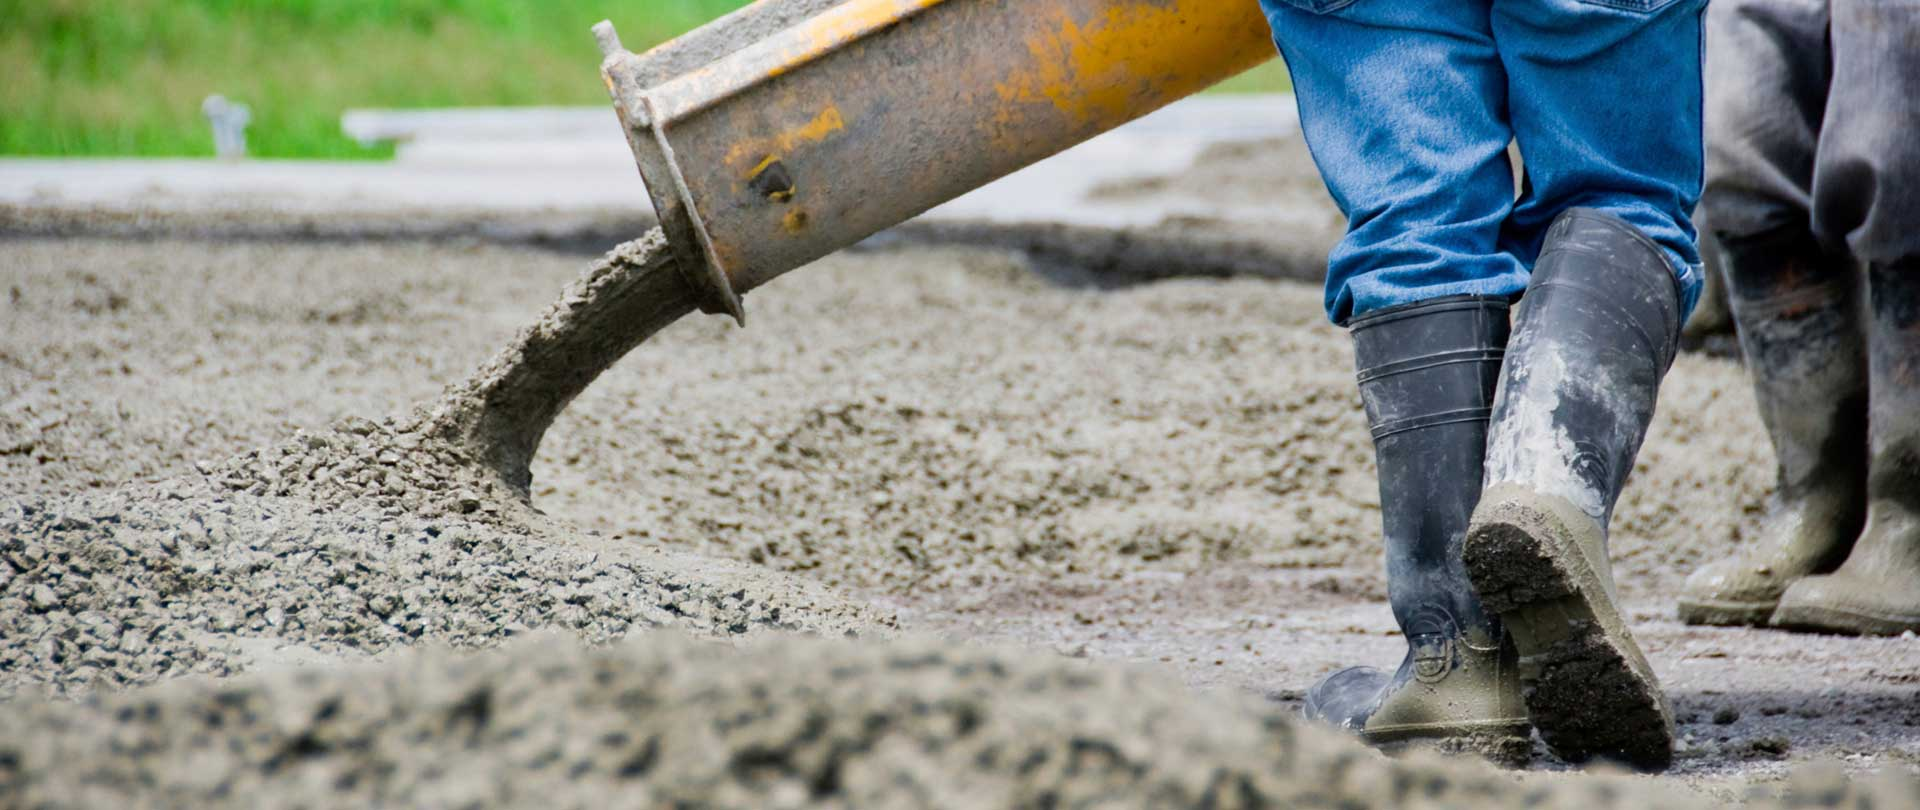 Concrete and concrete products